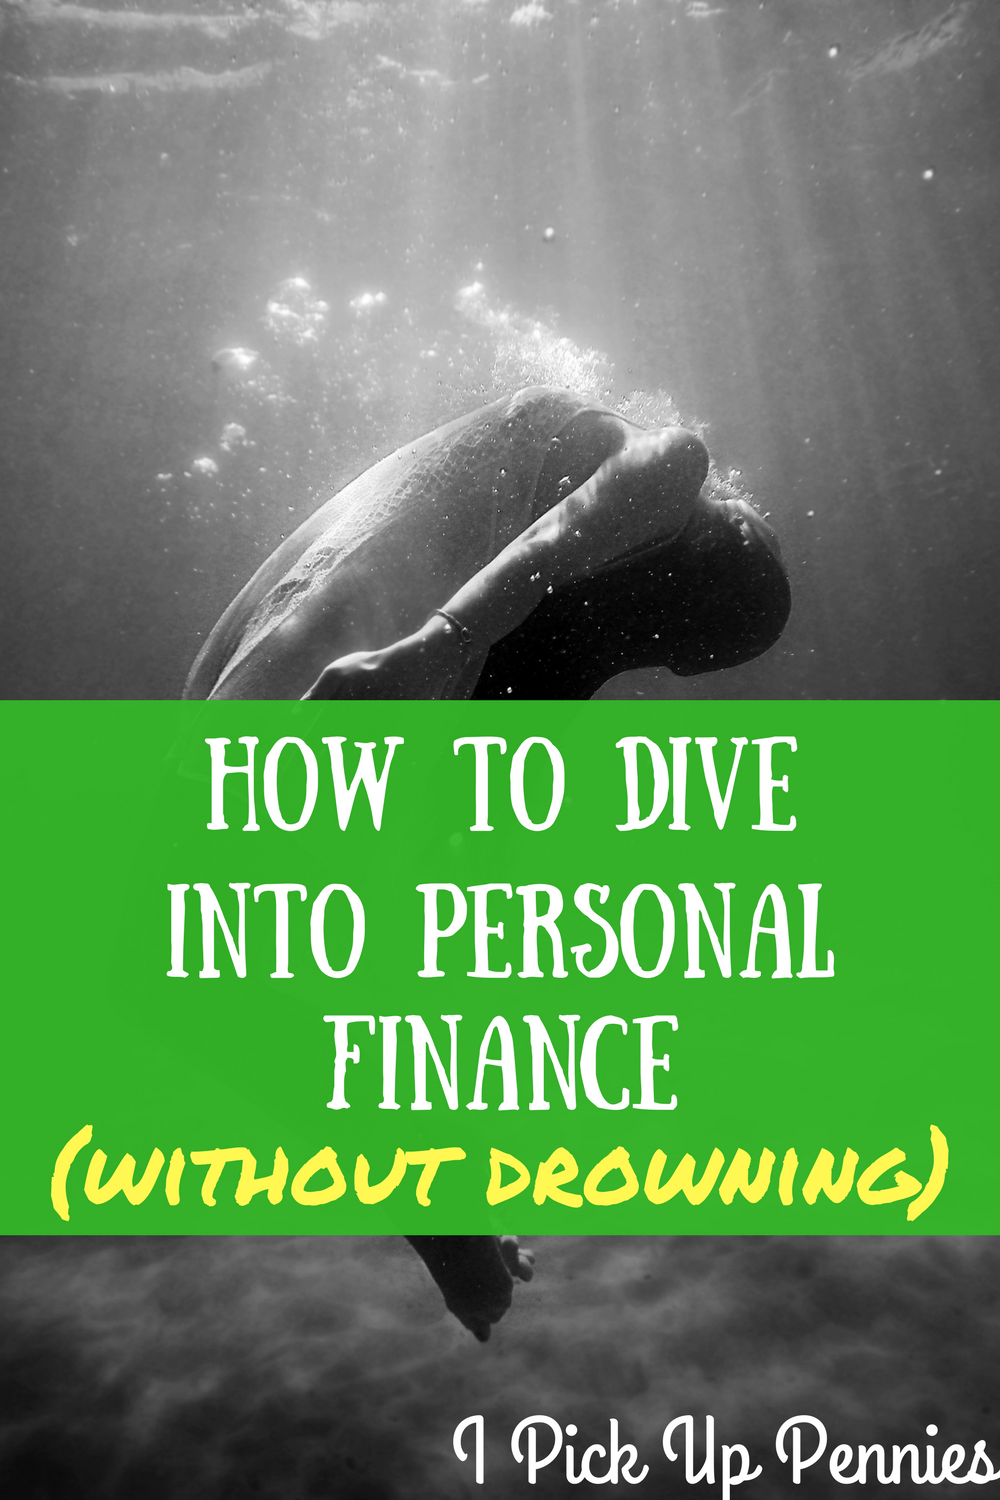 Personal finance is so confusing -- this helps!